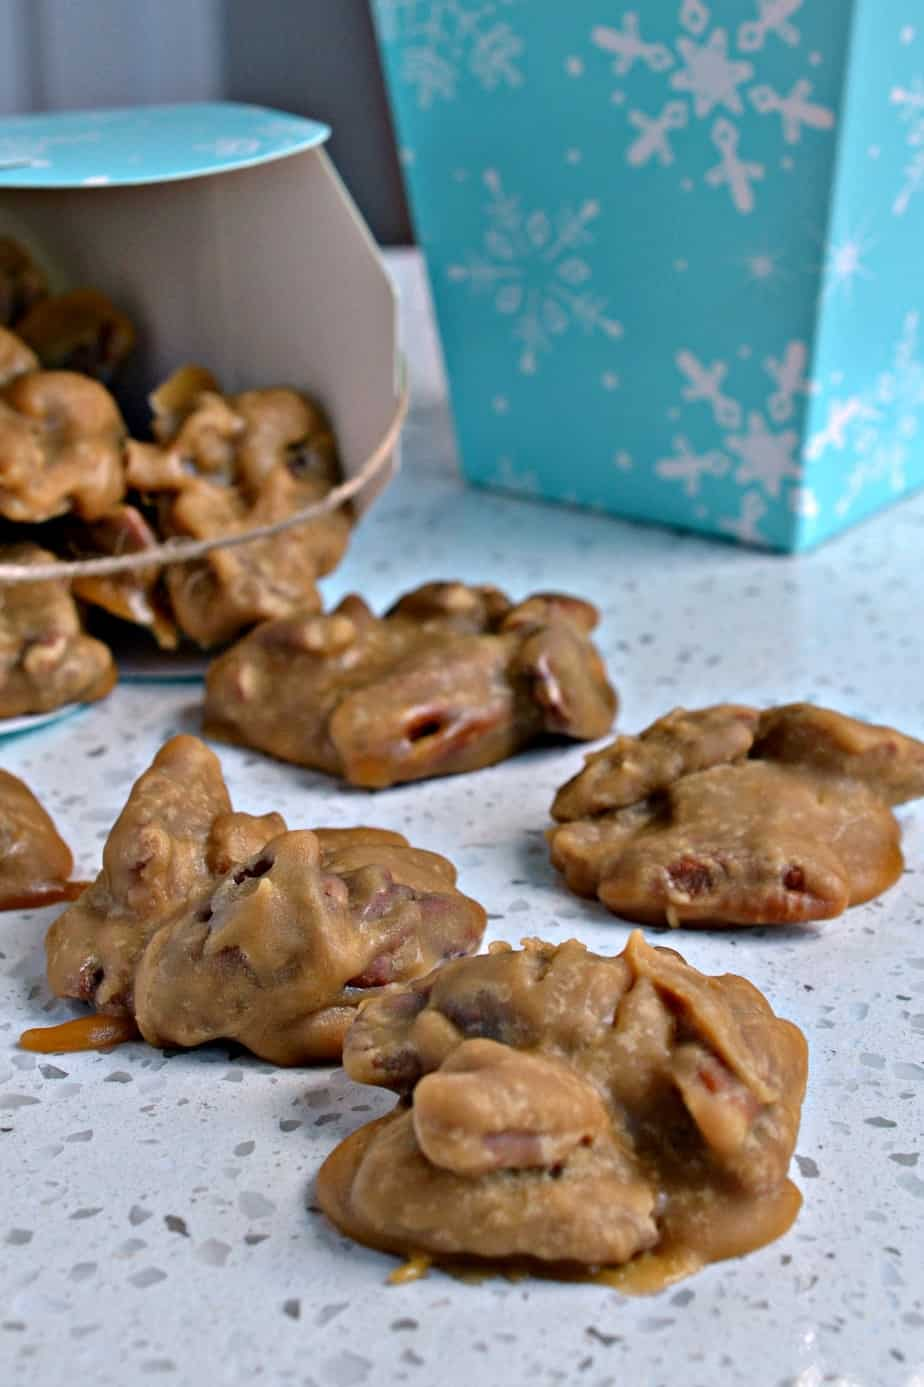 Southern Pecan Pralines are sweet brown sugar caramel like candy treasures filled with roasted pecans.